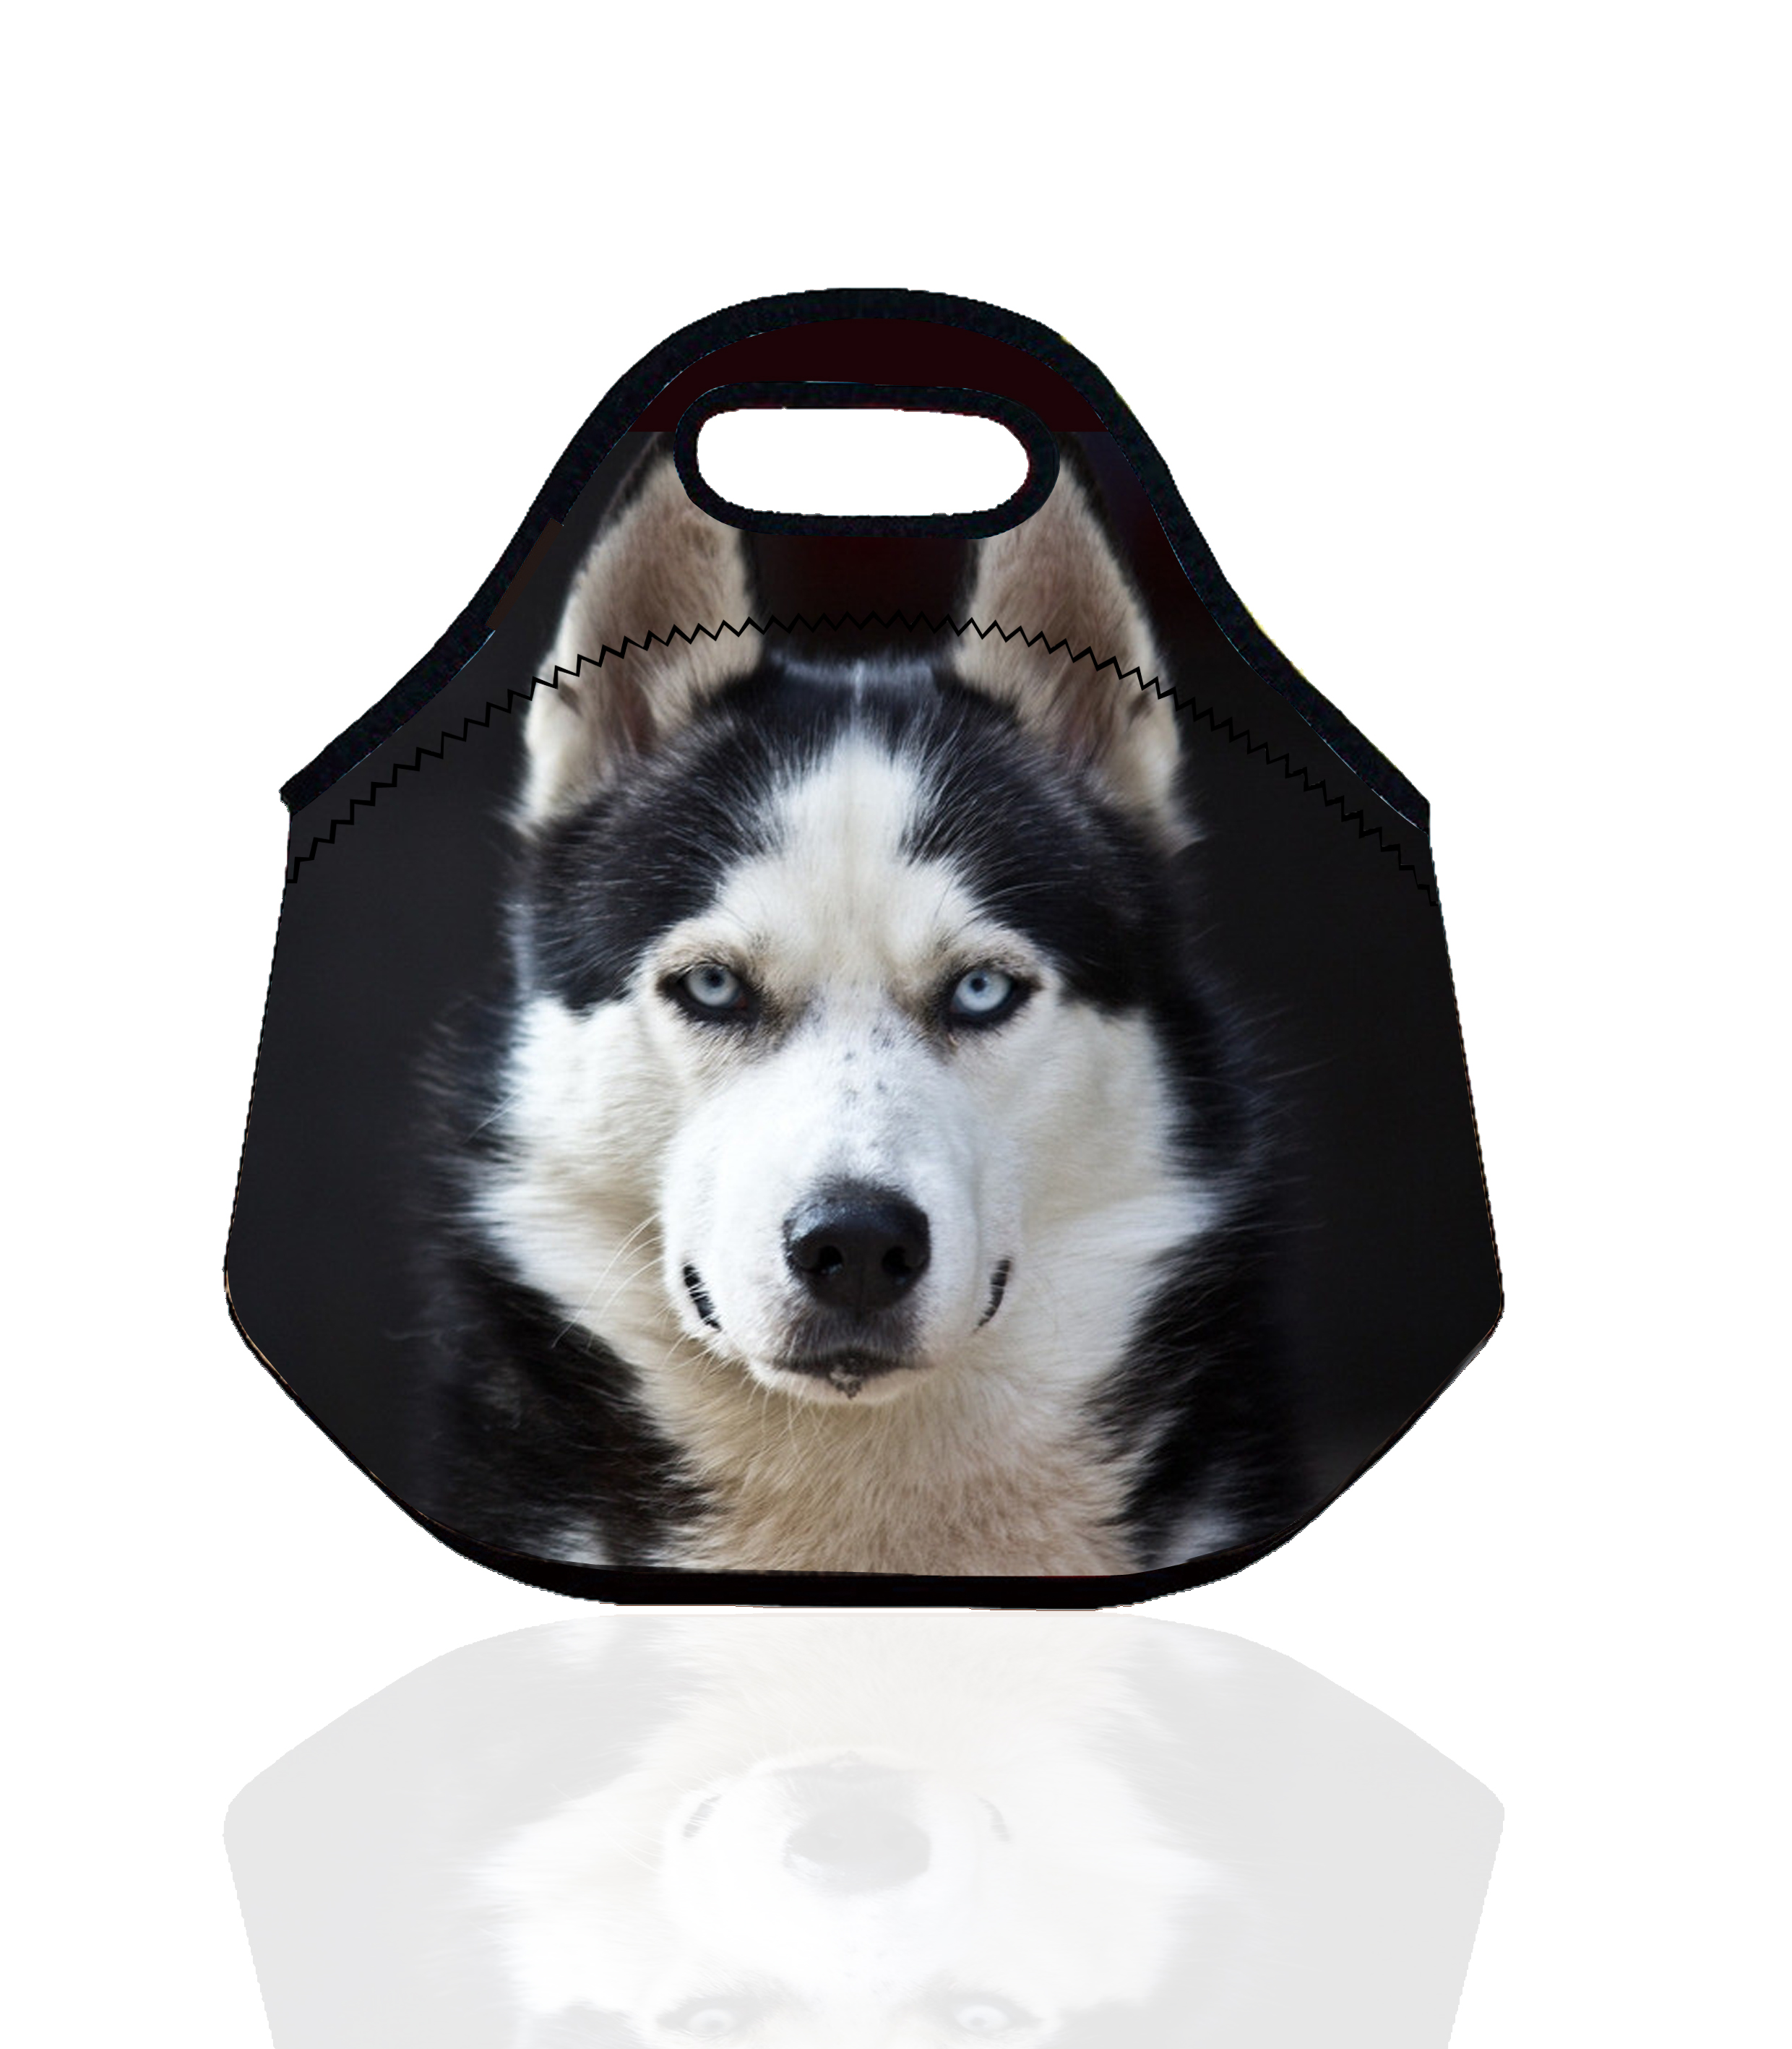 Dog Pattern Portable Insulated Storage Bag Thermal Food Picnic Lunch Bags for Women kids Men Lunch Box Bag Tote bolsa termica